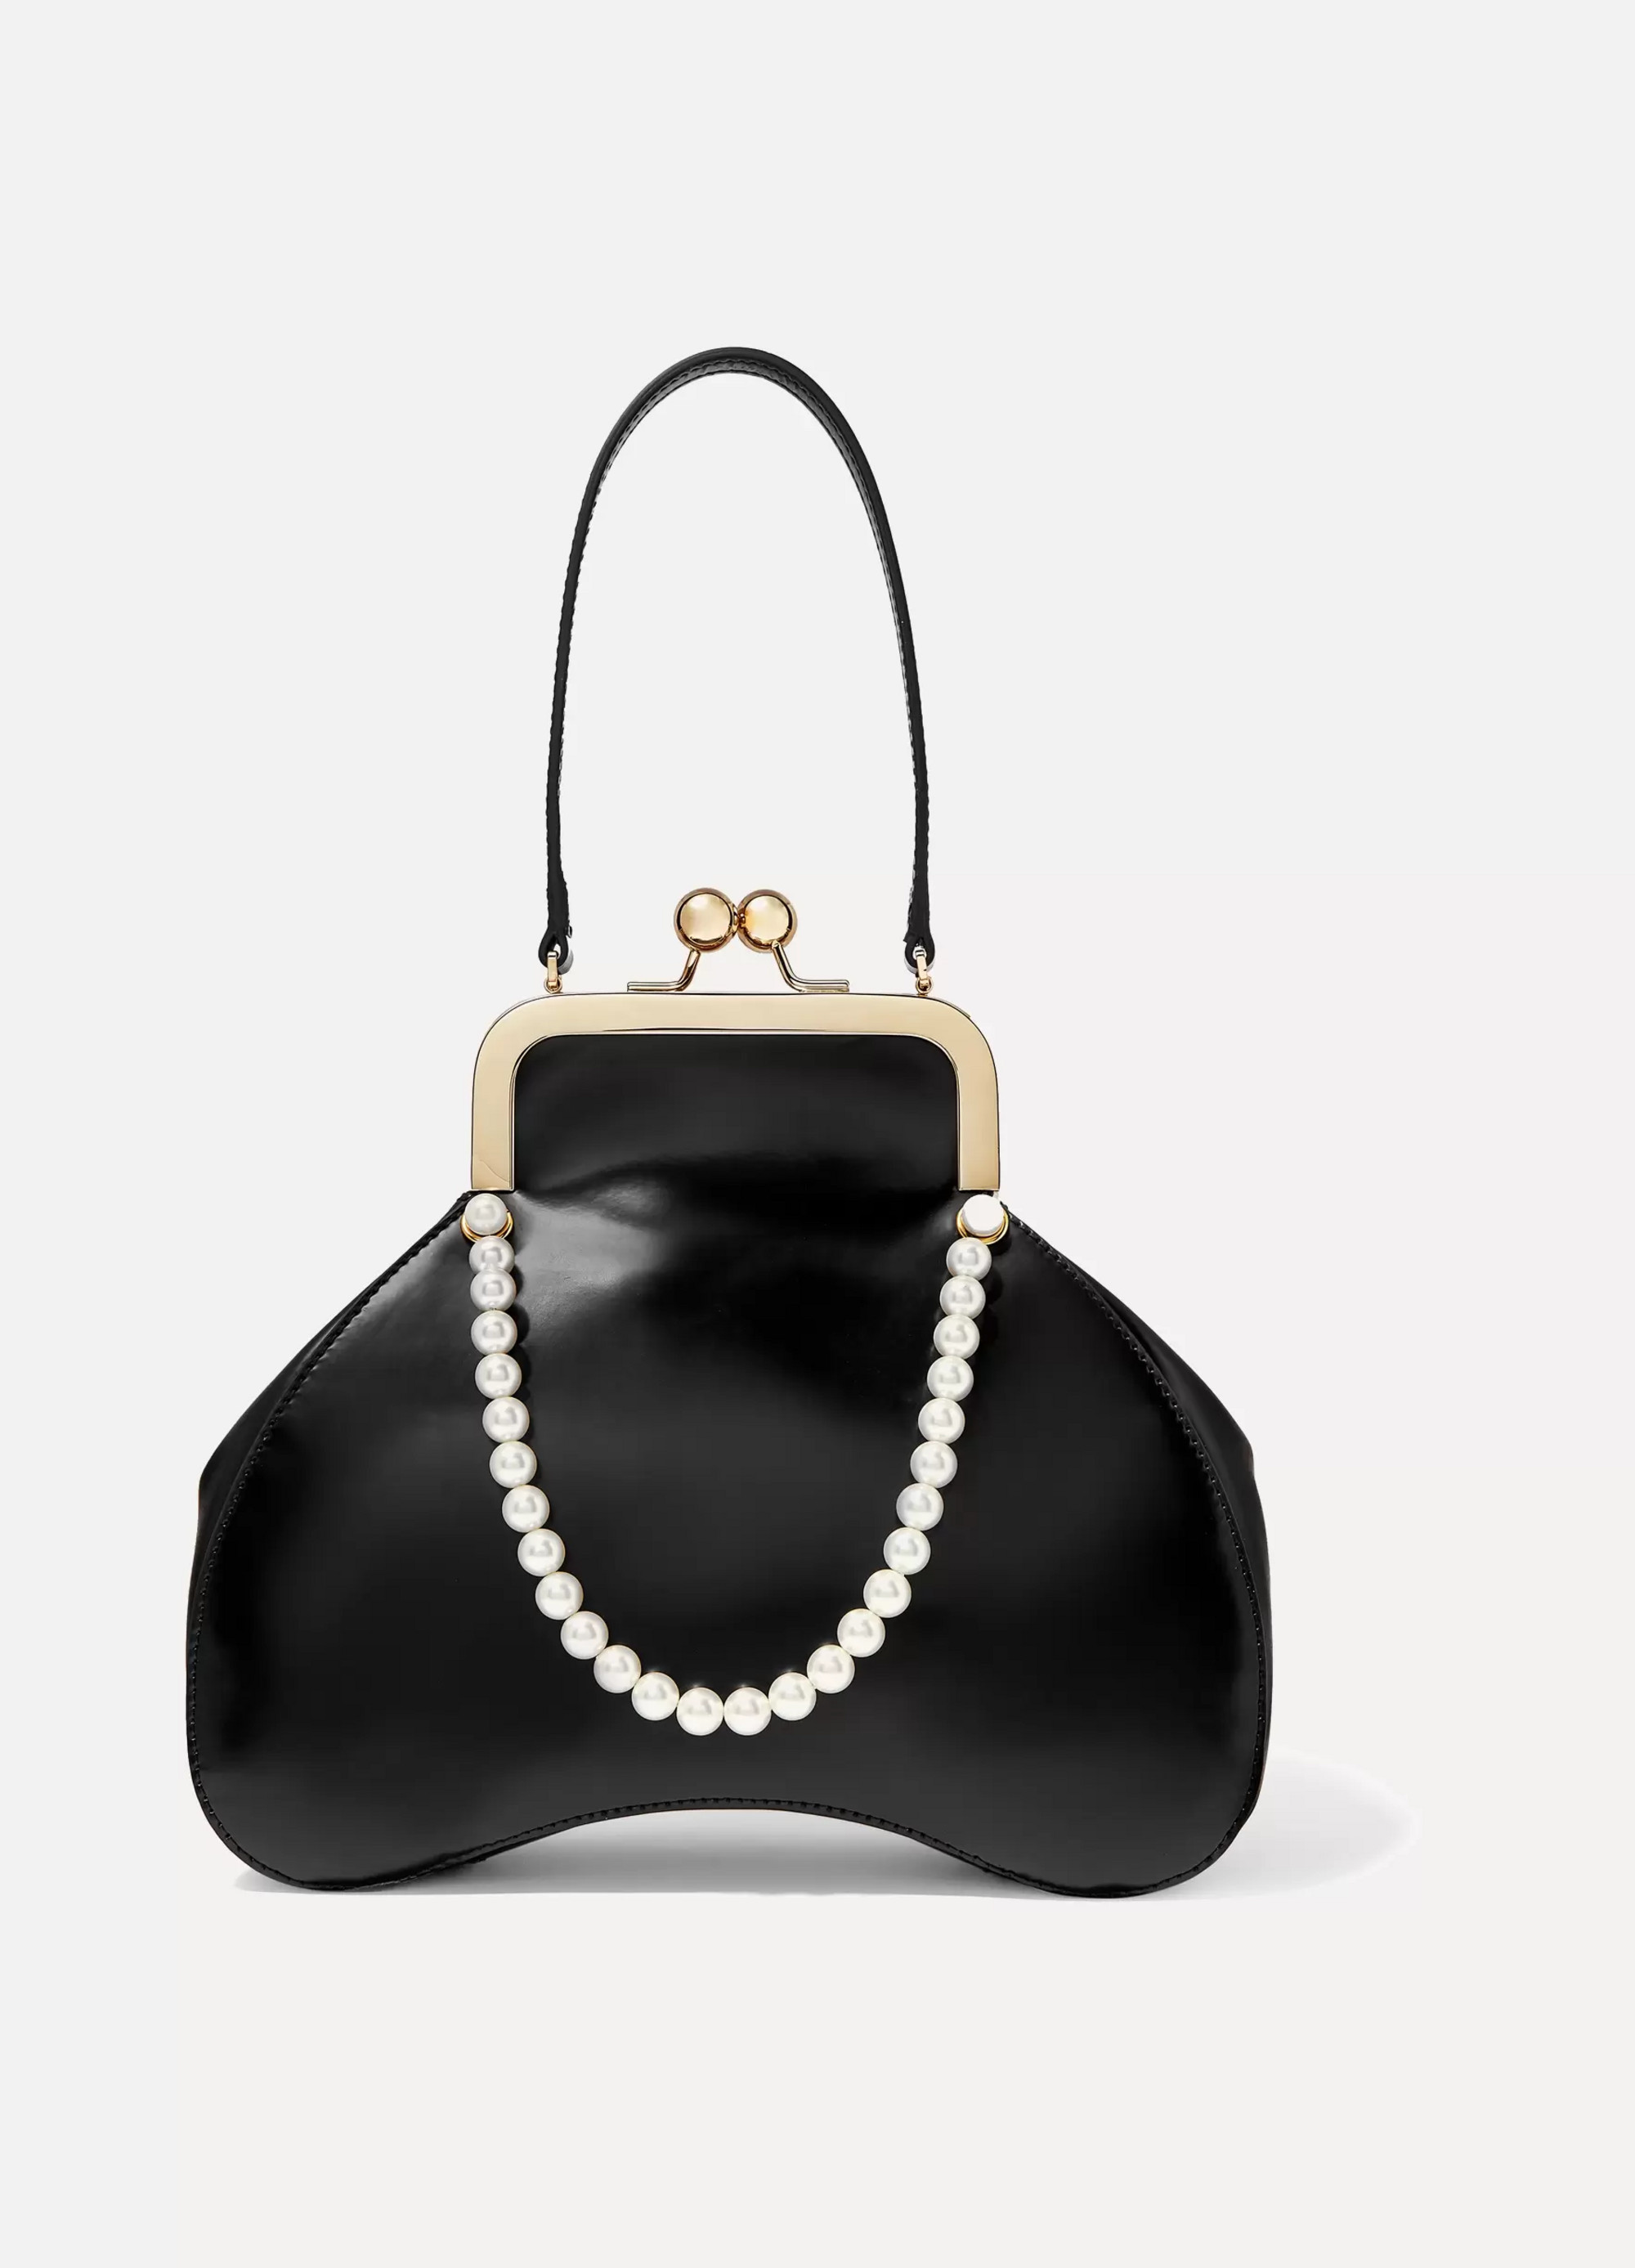 Simone Rocha Baby Bean faux pearl-embellished leather tote